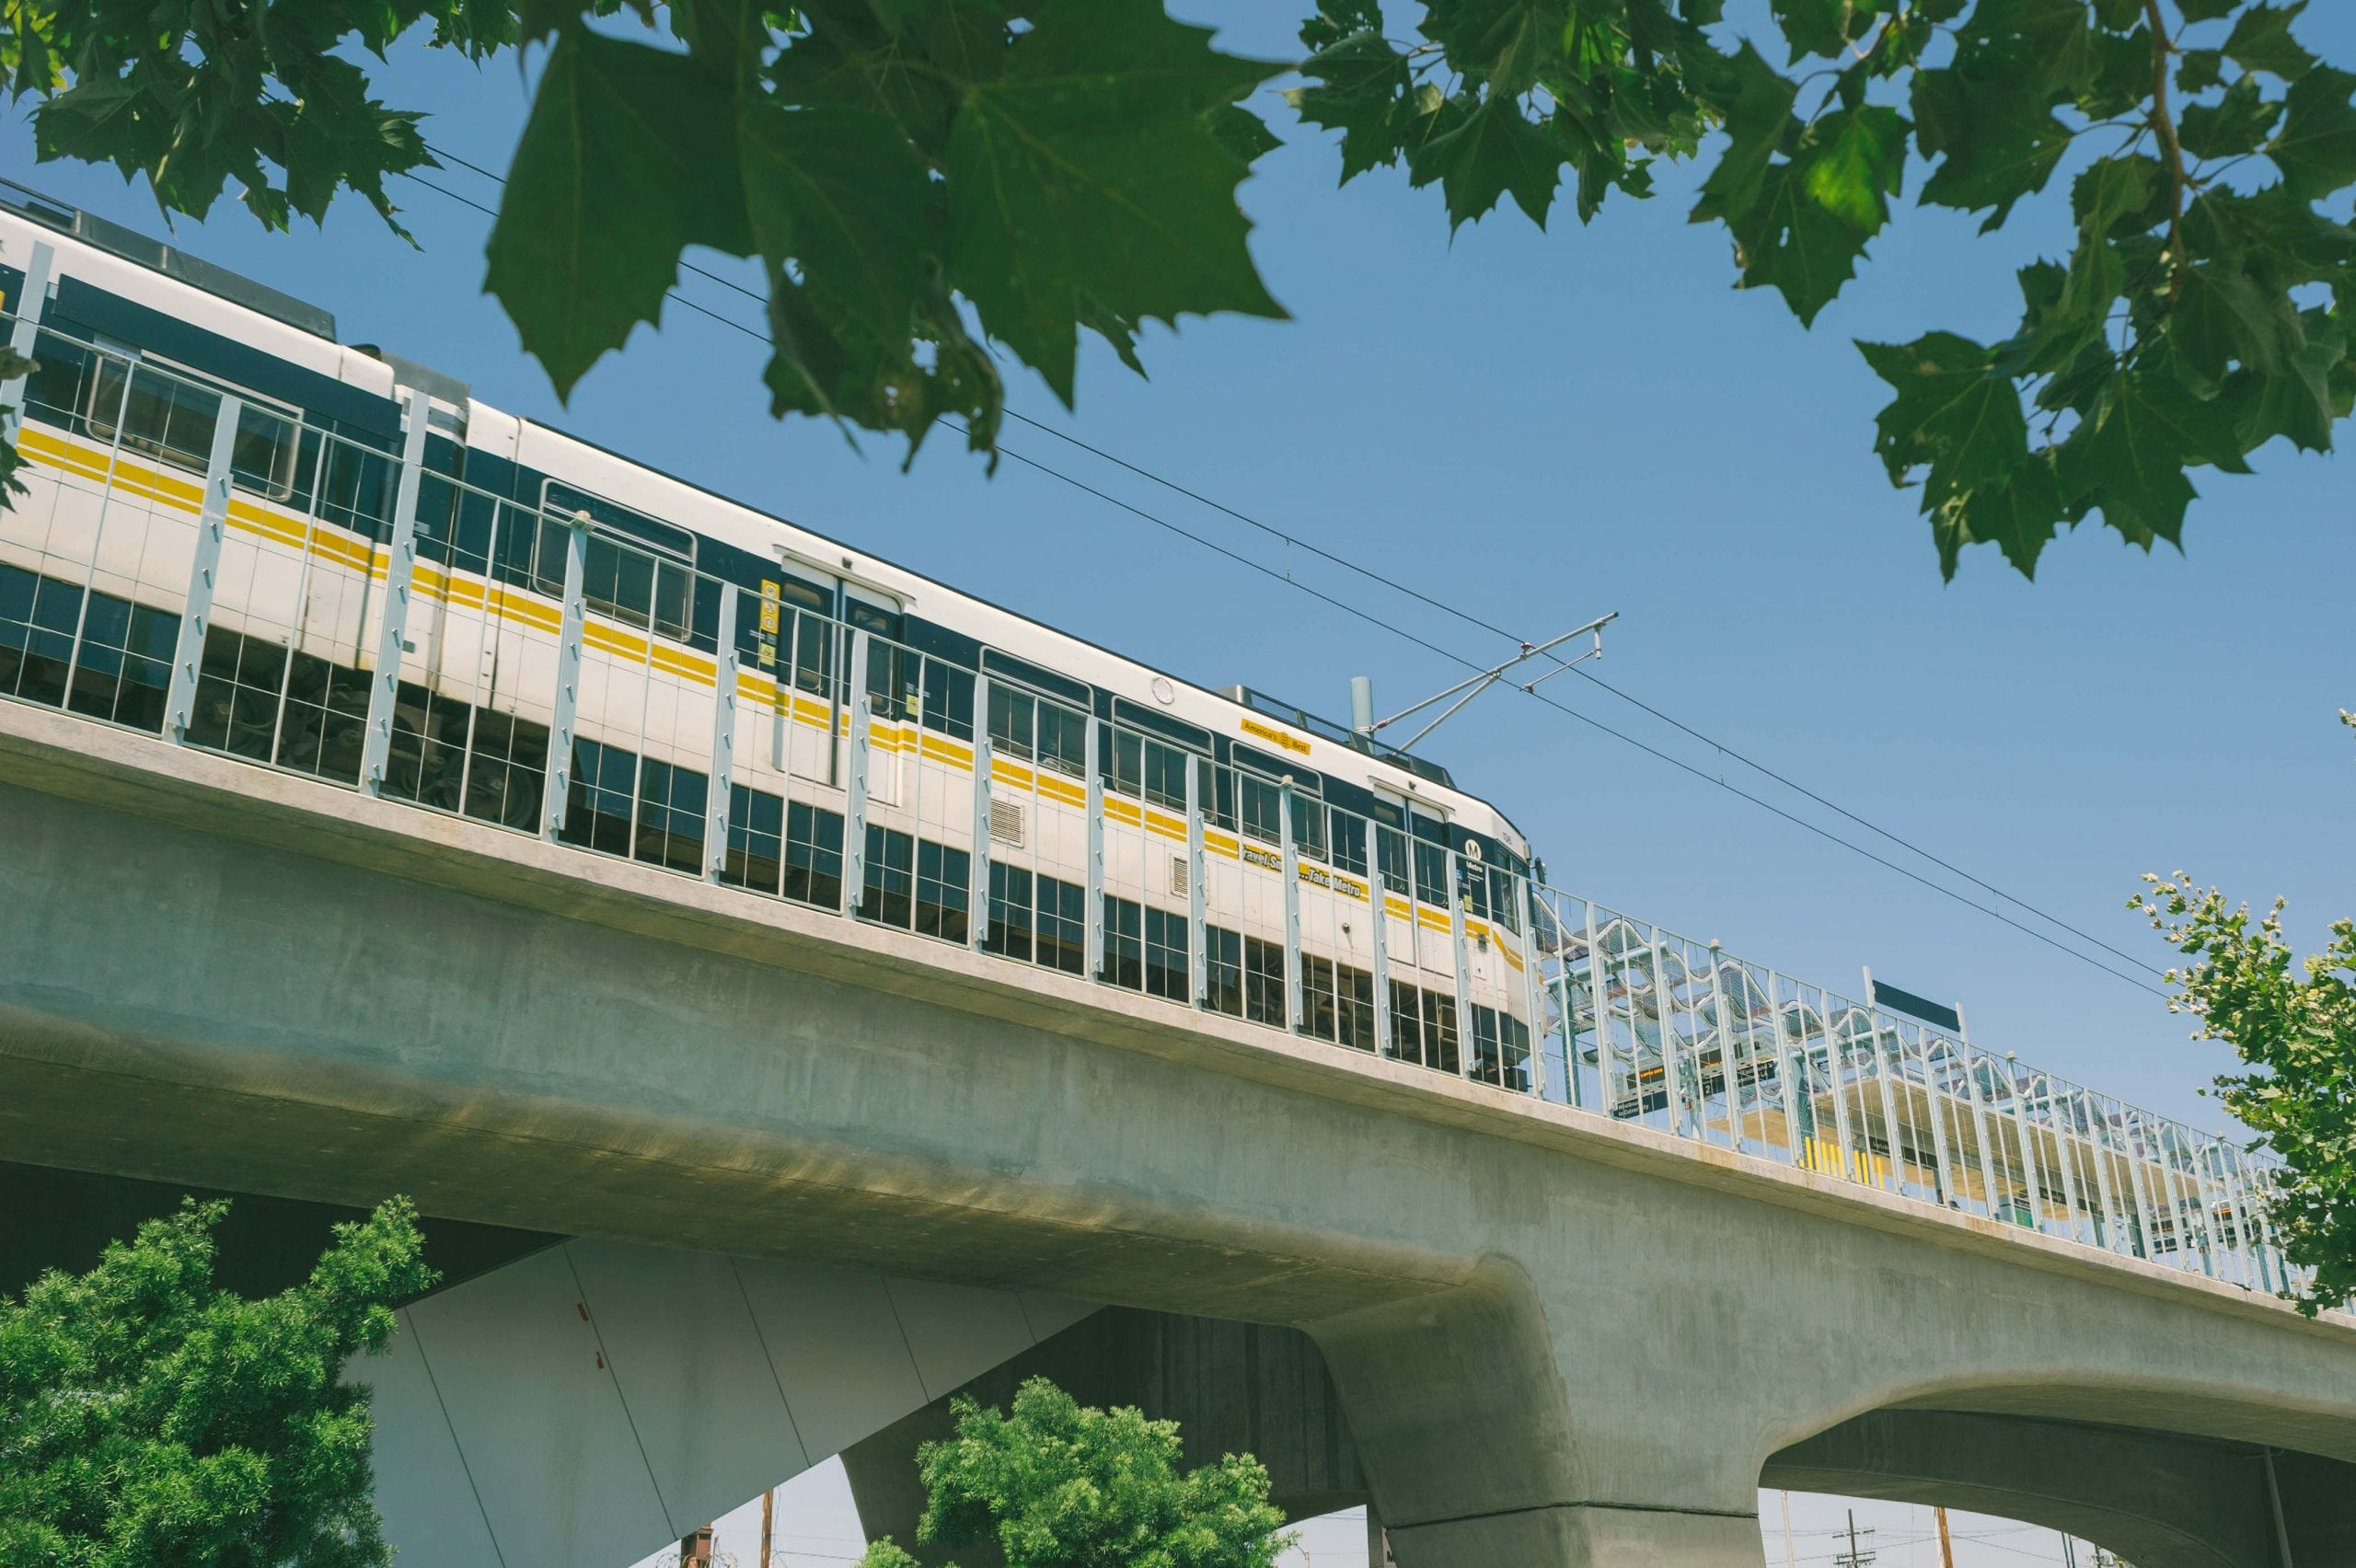 An eastbound Expo Line train at La Brea Station. Photo by Steve Hymon/Metro.